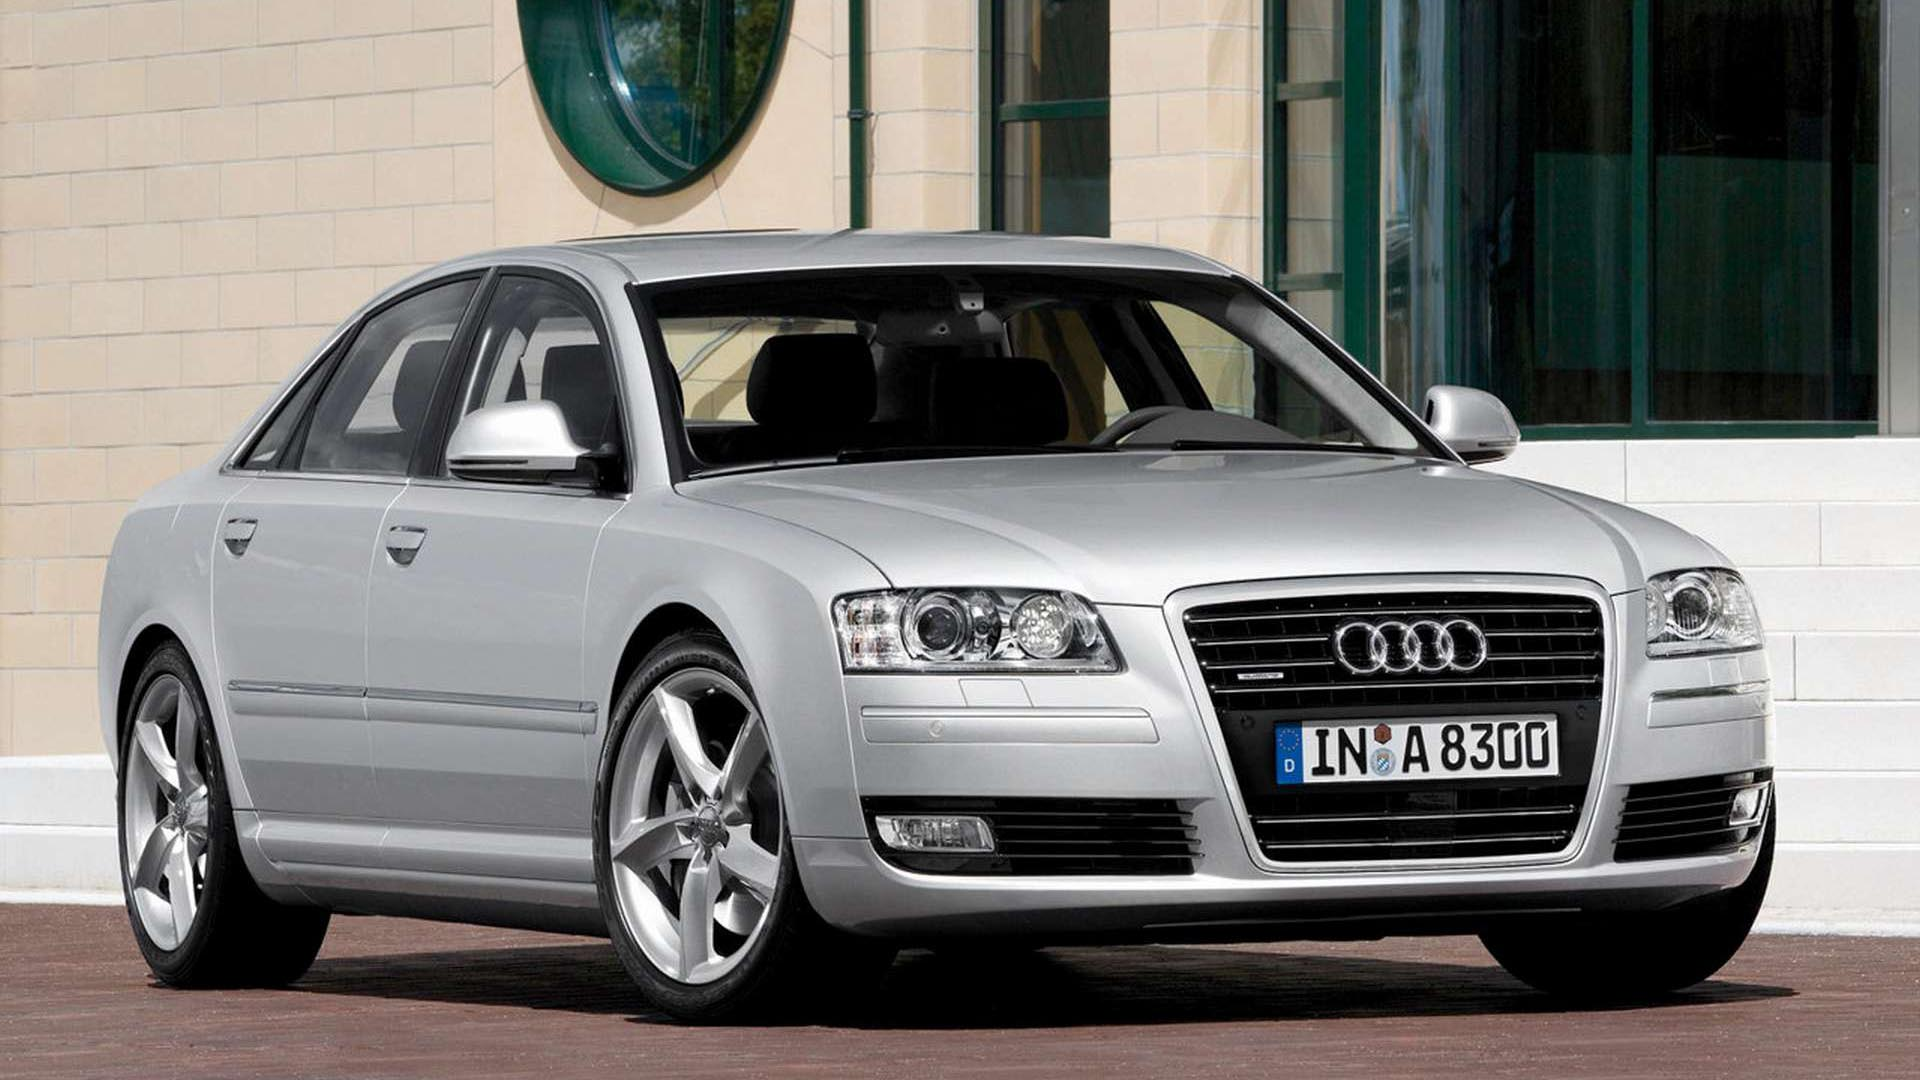 5 Of The Best Used European Luxury Cars To Buy On The Cheap